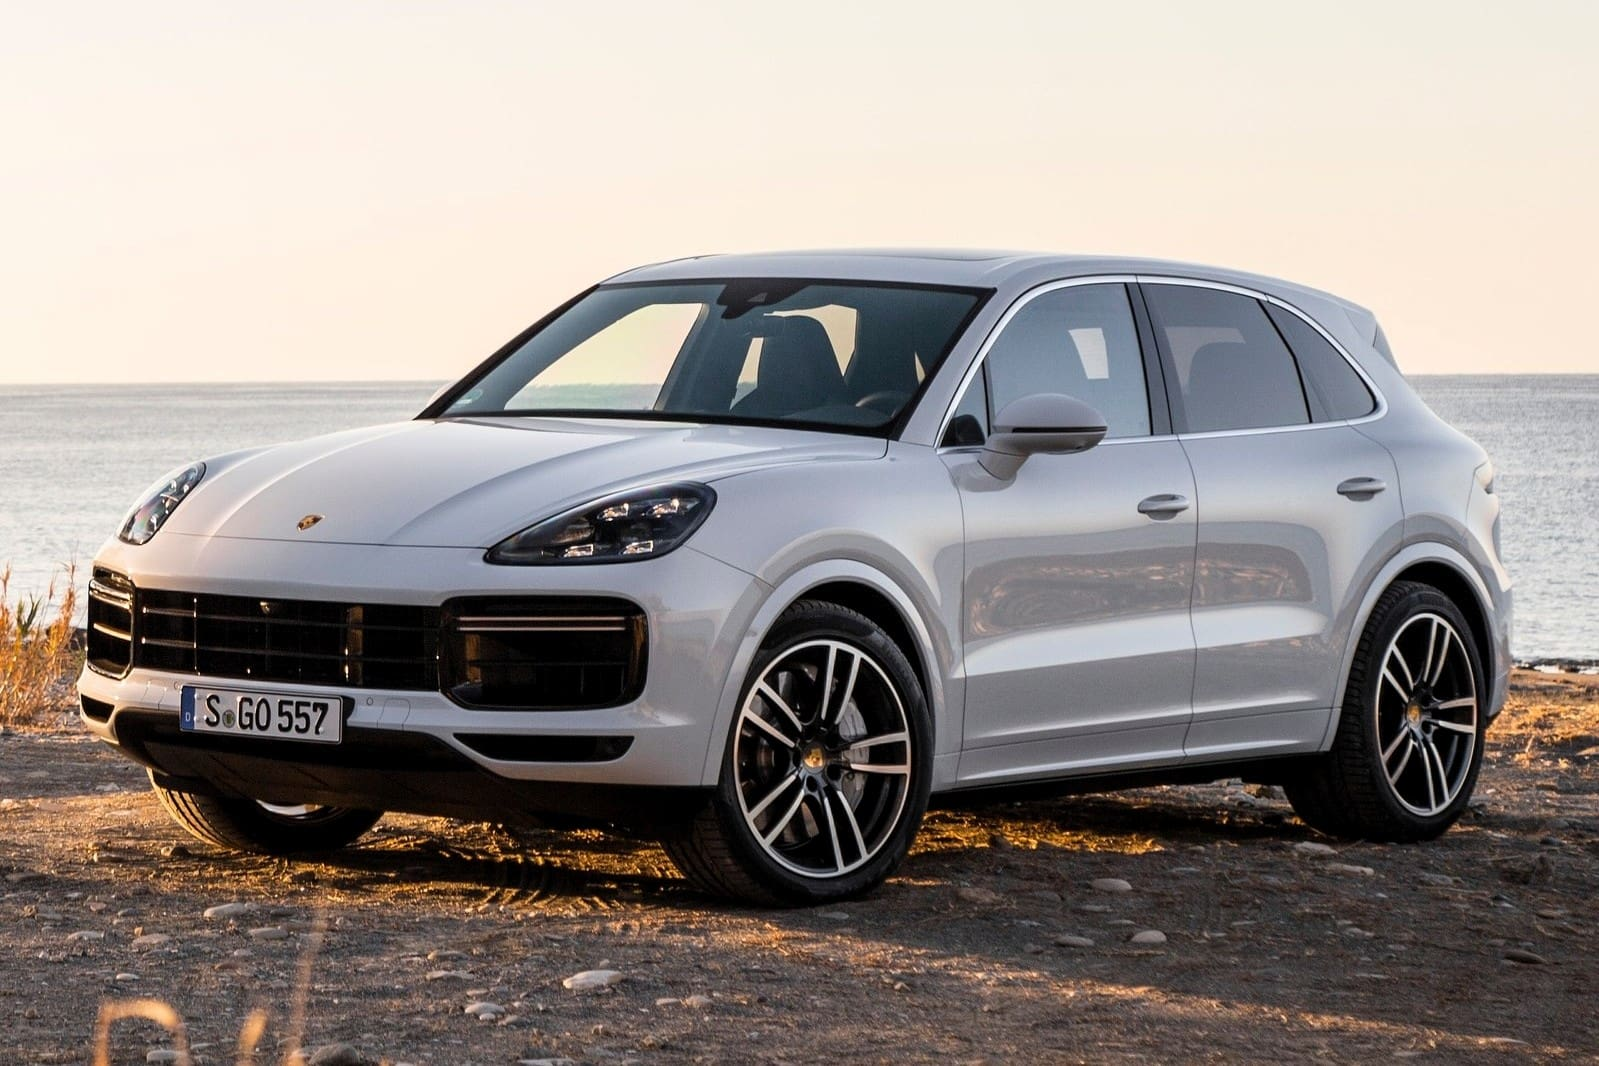 2018 Porsche Cayenne Launched At Rs 1 19 Crore Cardekho Com